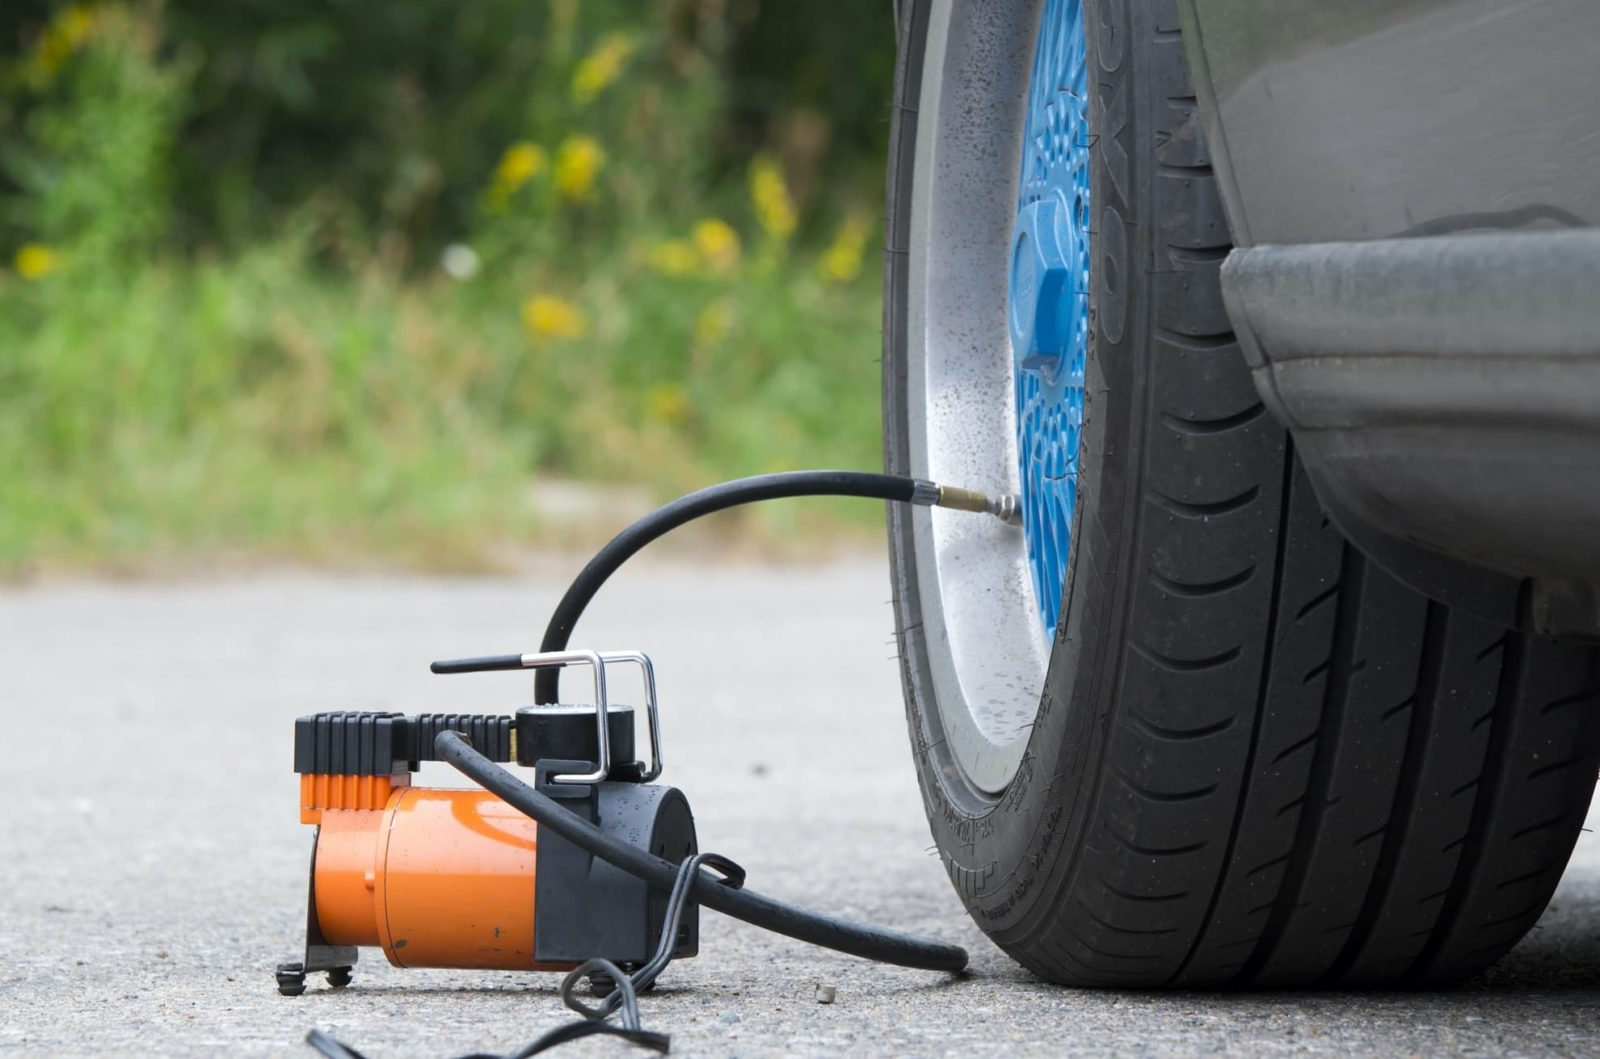 air compressor being used to pump up a car tyre